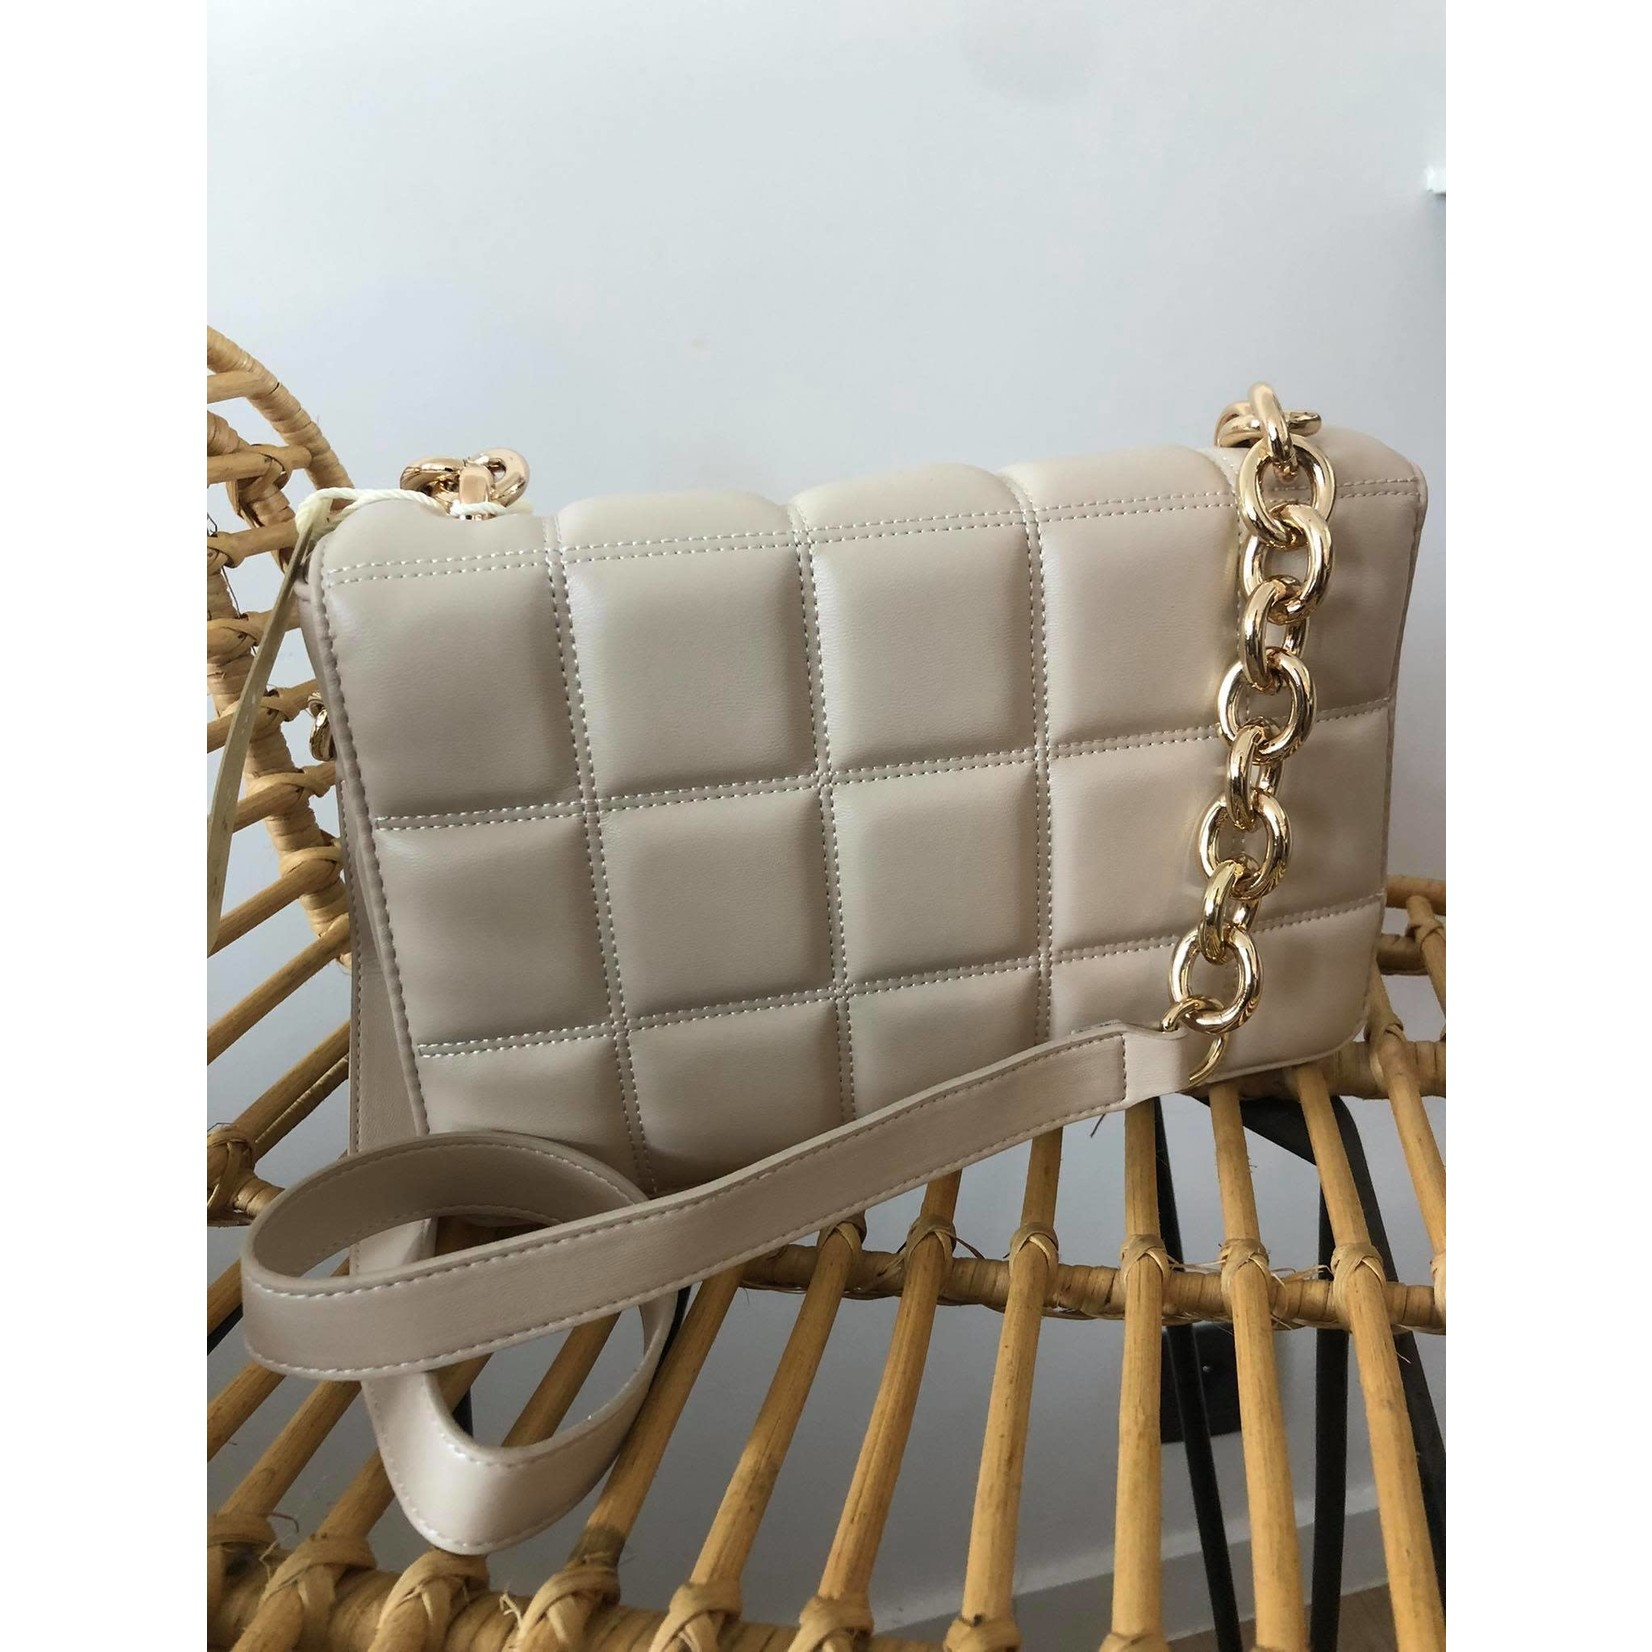 Quilted bag beige